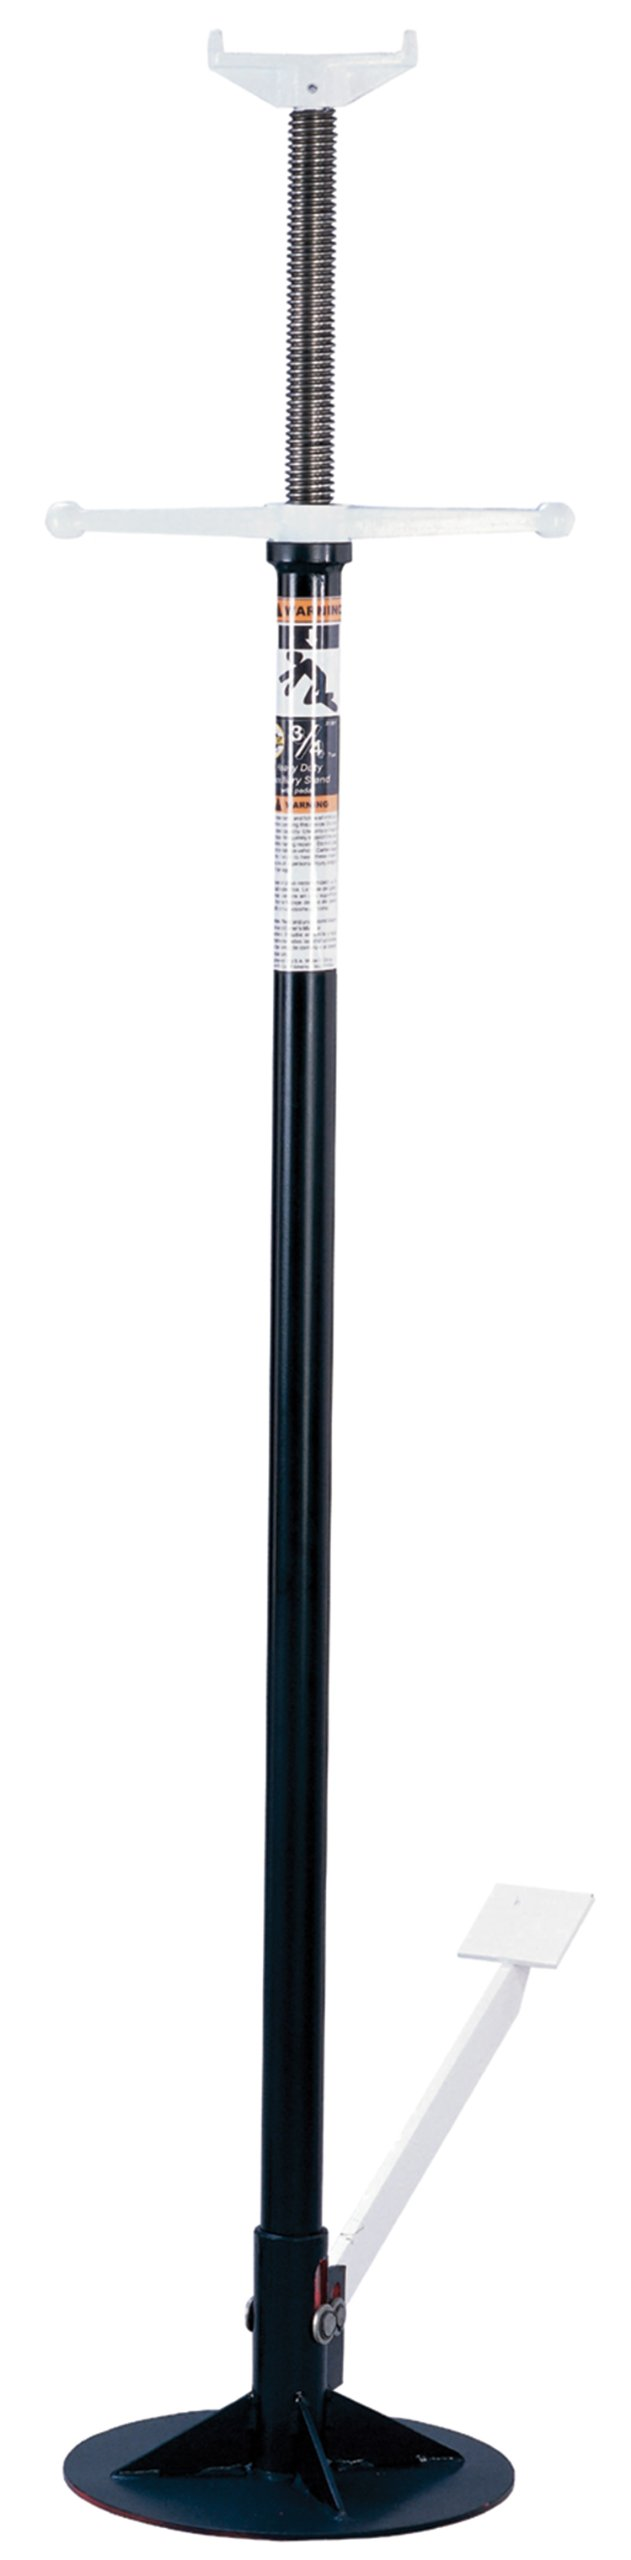 Omega 31501 Black Under Hoist Stand with Foot Pedal - 3/4 Ton Capacity by Omega